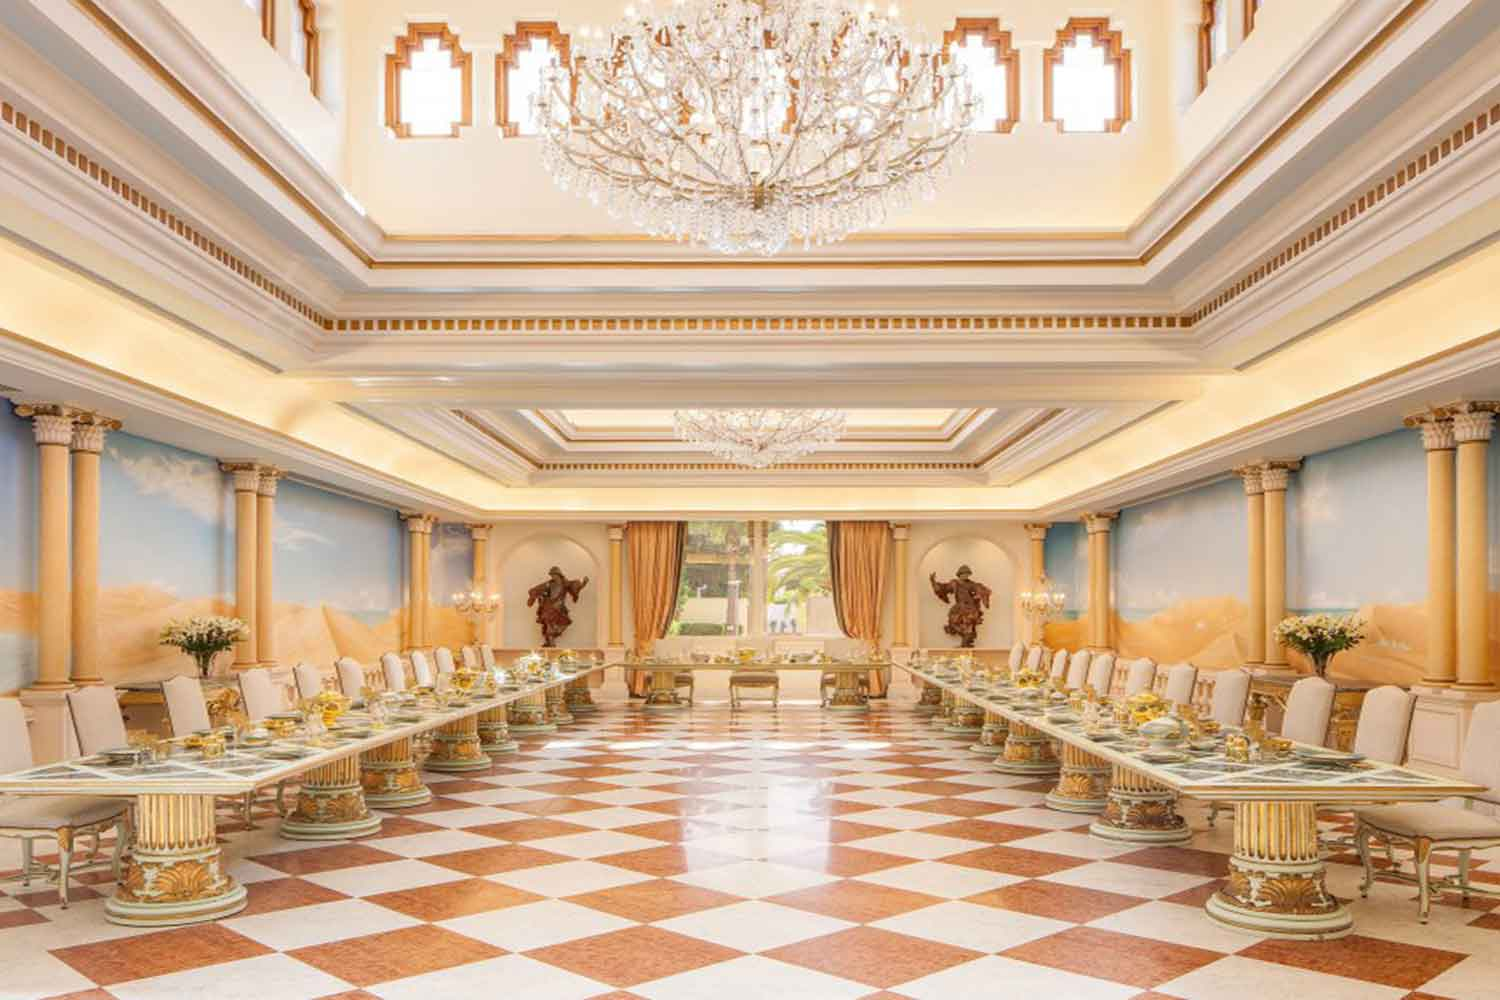 <b>Morocco</b><br/><i>24 Bedrooms, 161,460 sq. ft.</i><br/>Luxurious Moorish-style palace